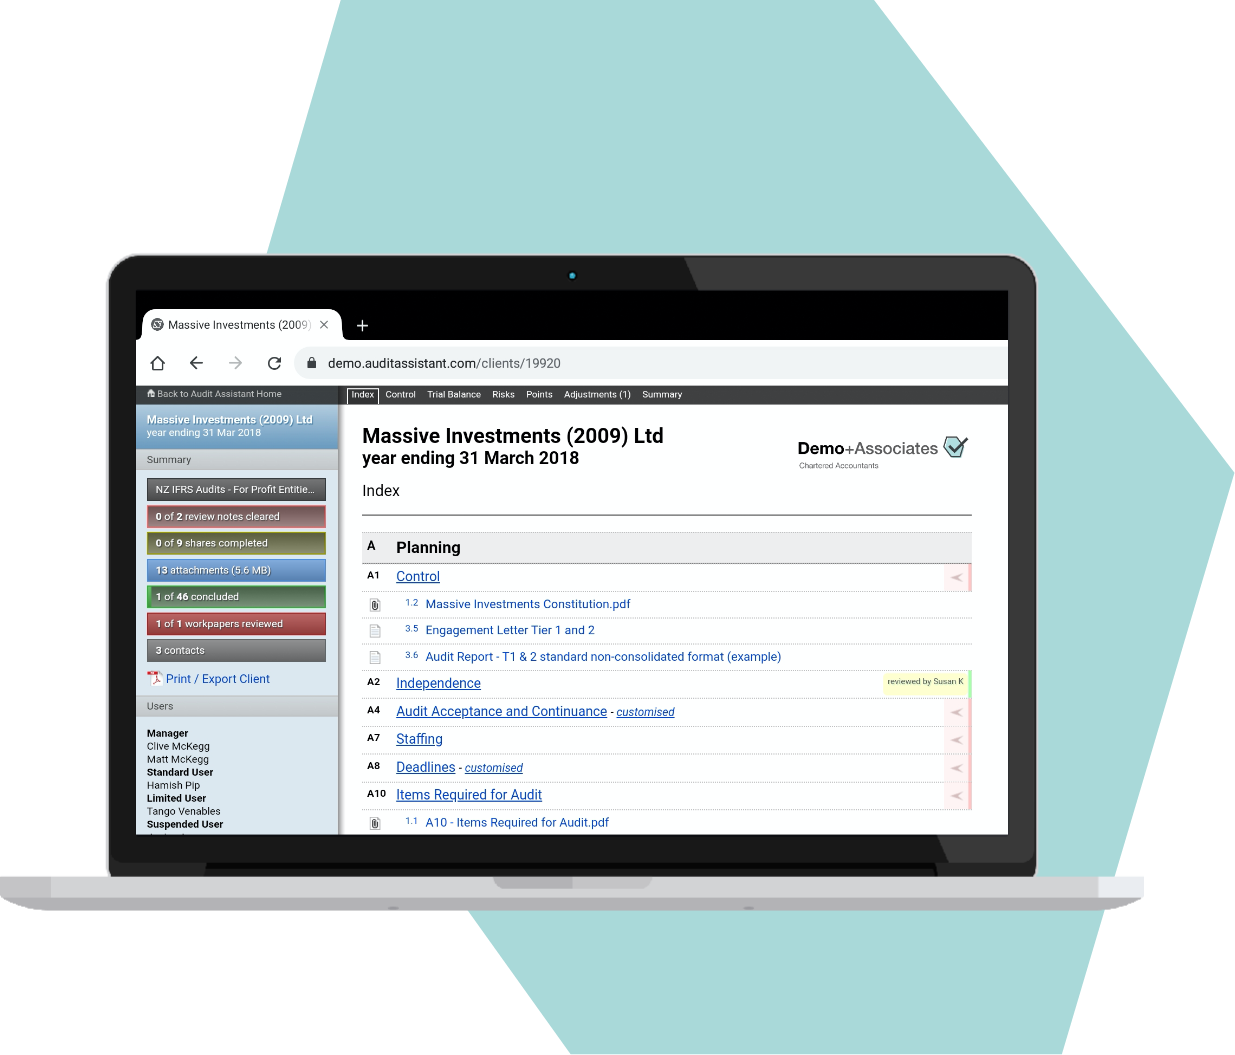 Screenshot for Up to date with the latest assurance, compliance and reporting standards